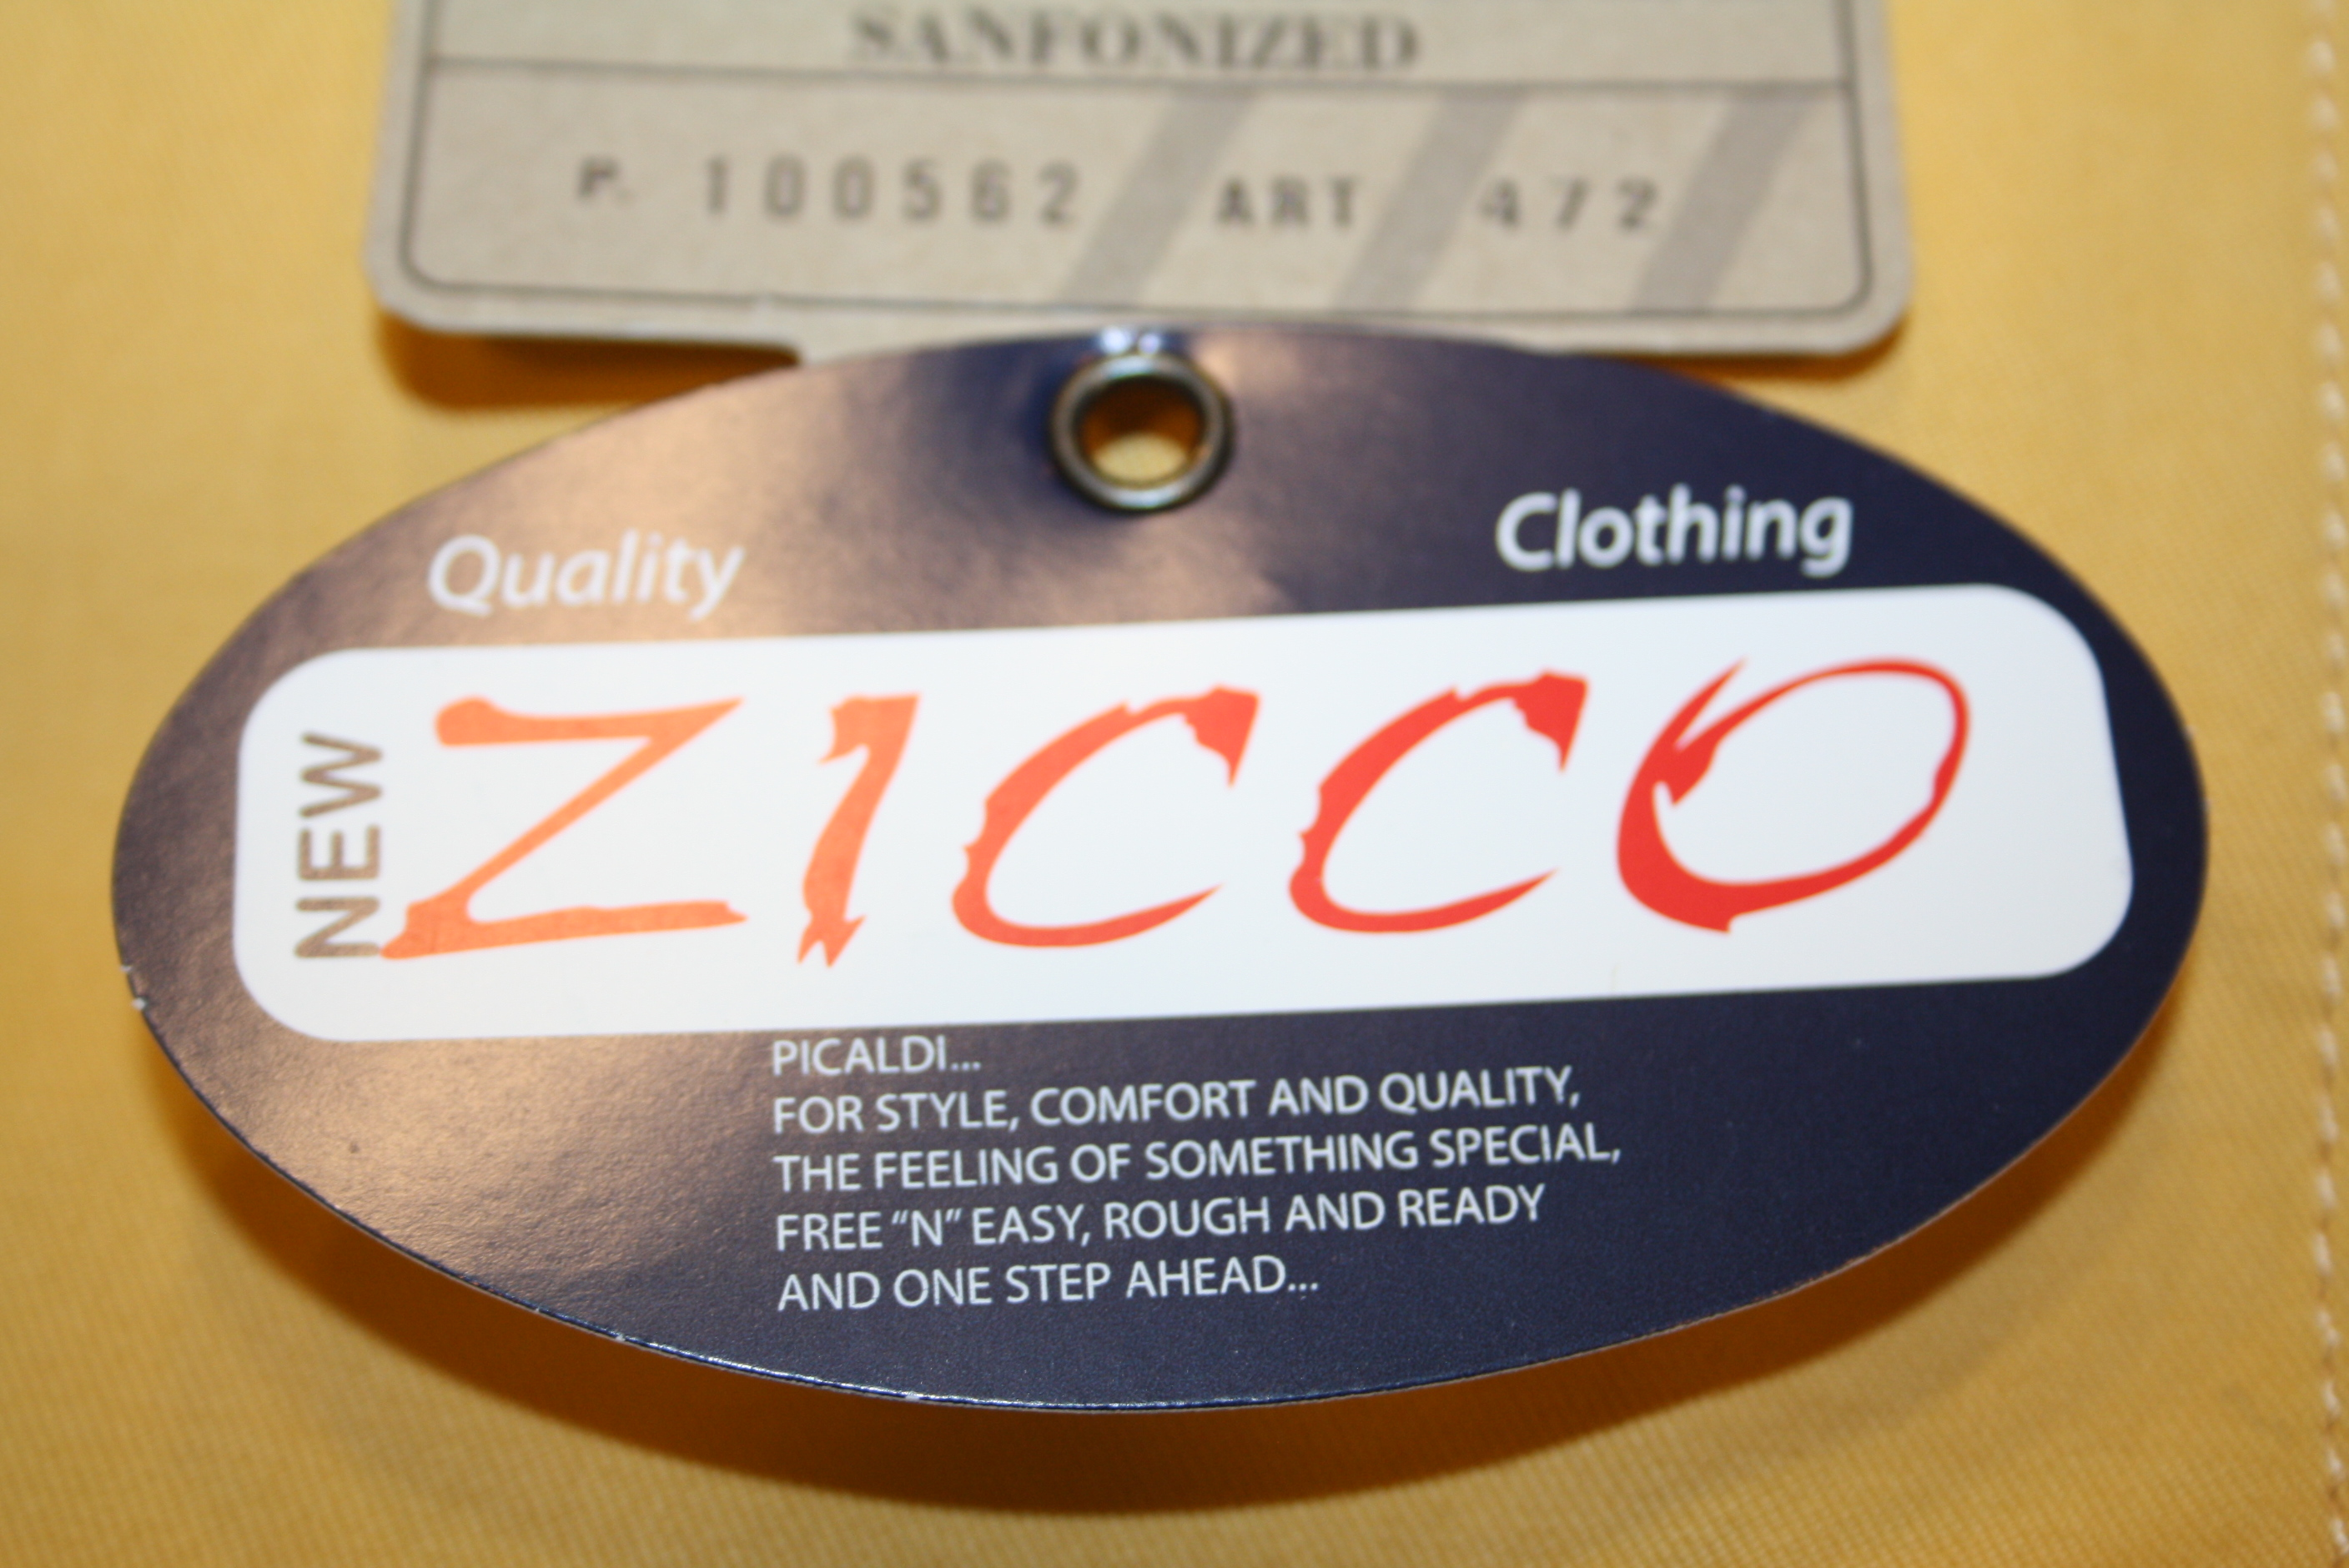 New Zicco 472 Jeans